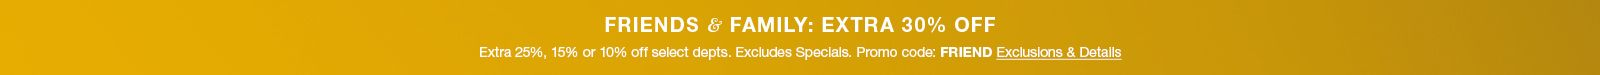 Friends and Family; Extra 30 percent Off, Extra 25 percent, 15 percent or 10 percent off select department, Excludes Specials Promo code: Friend Exclusions and Details